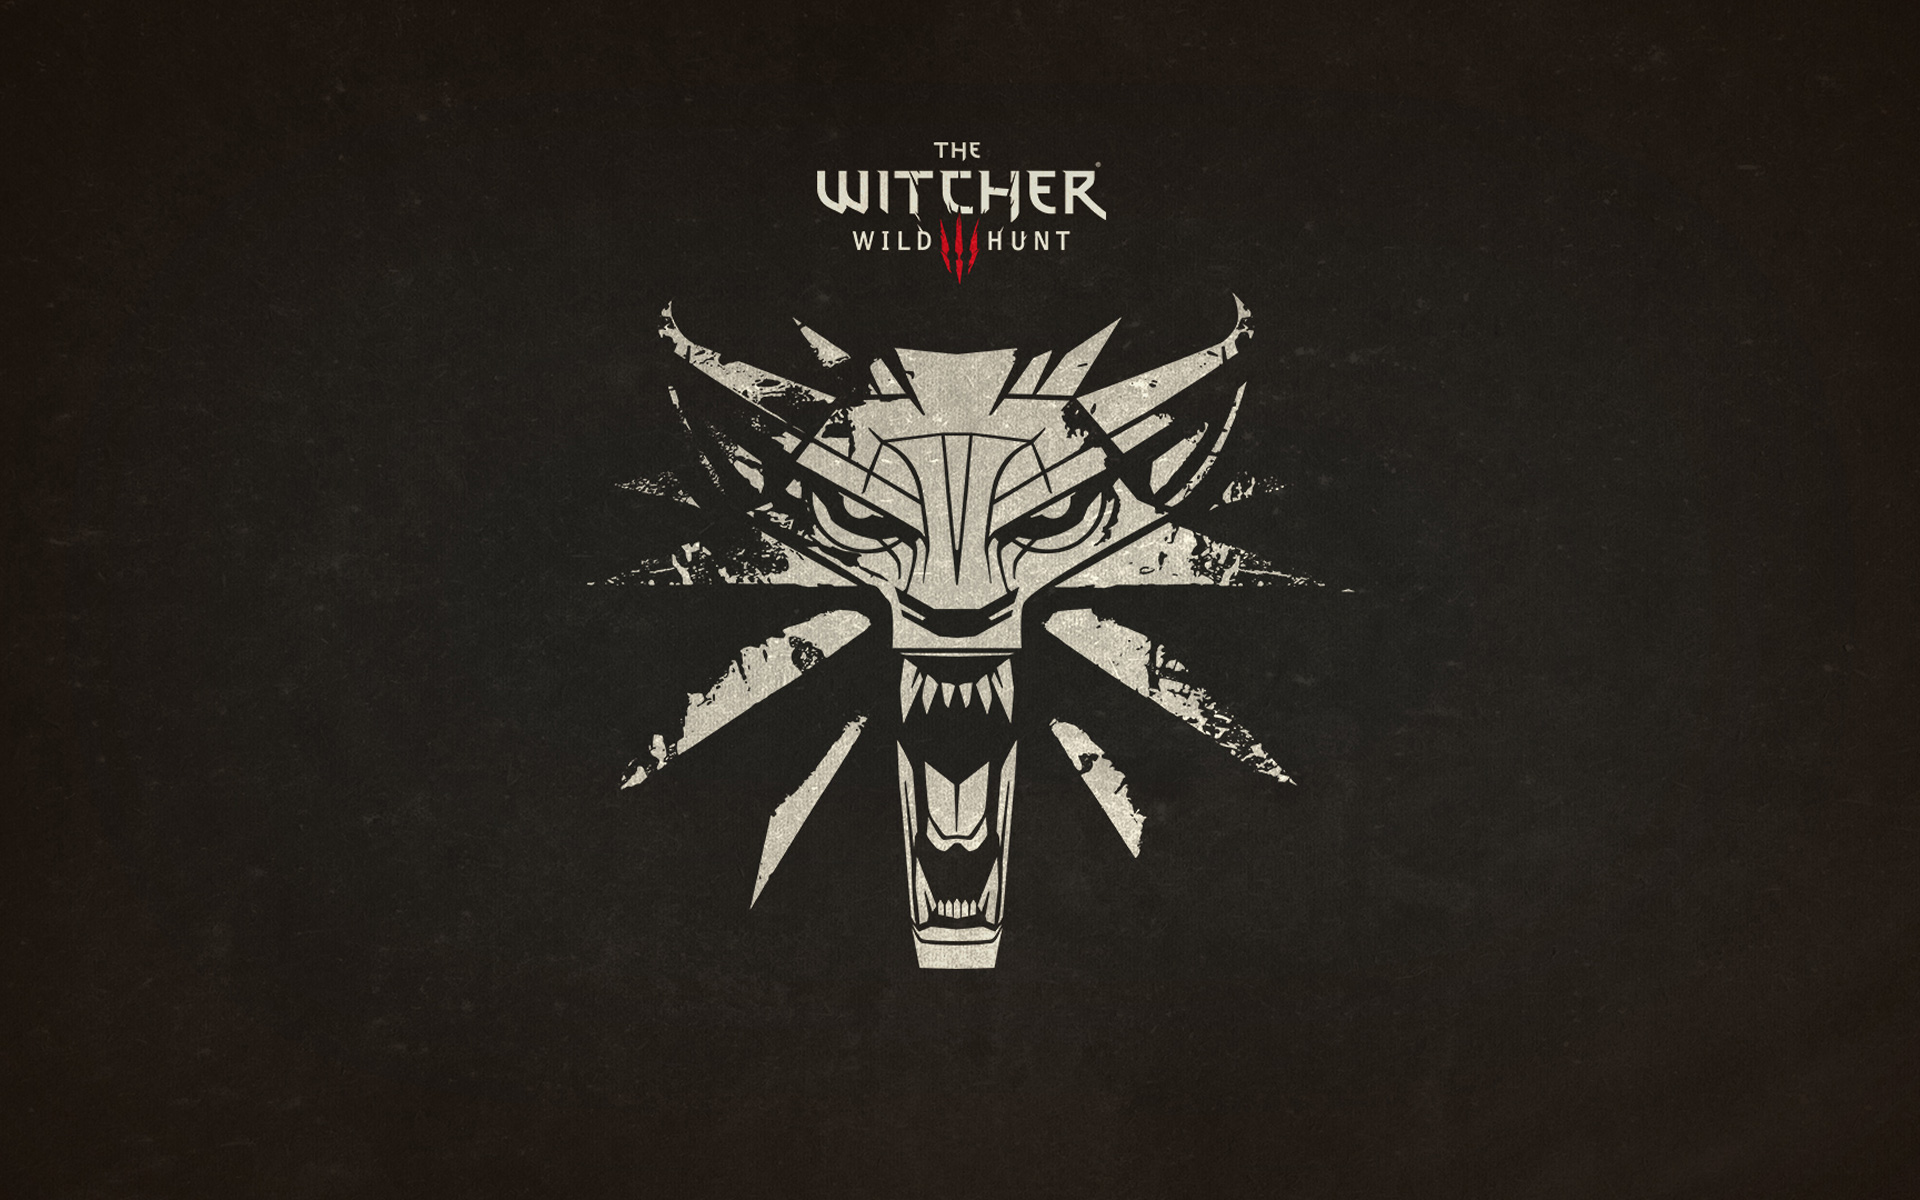 Free The Witcher 3 Wallpaper in 1920x1200